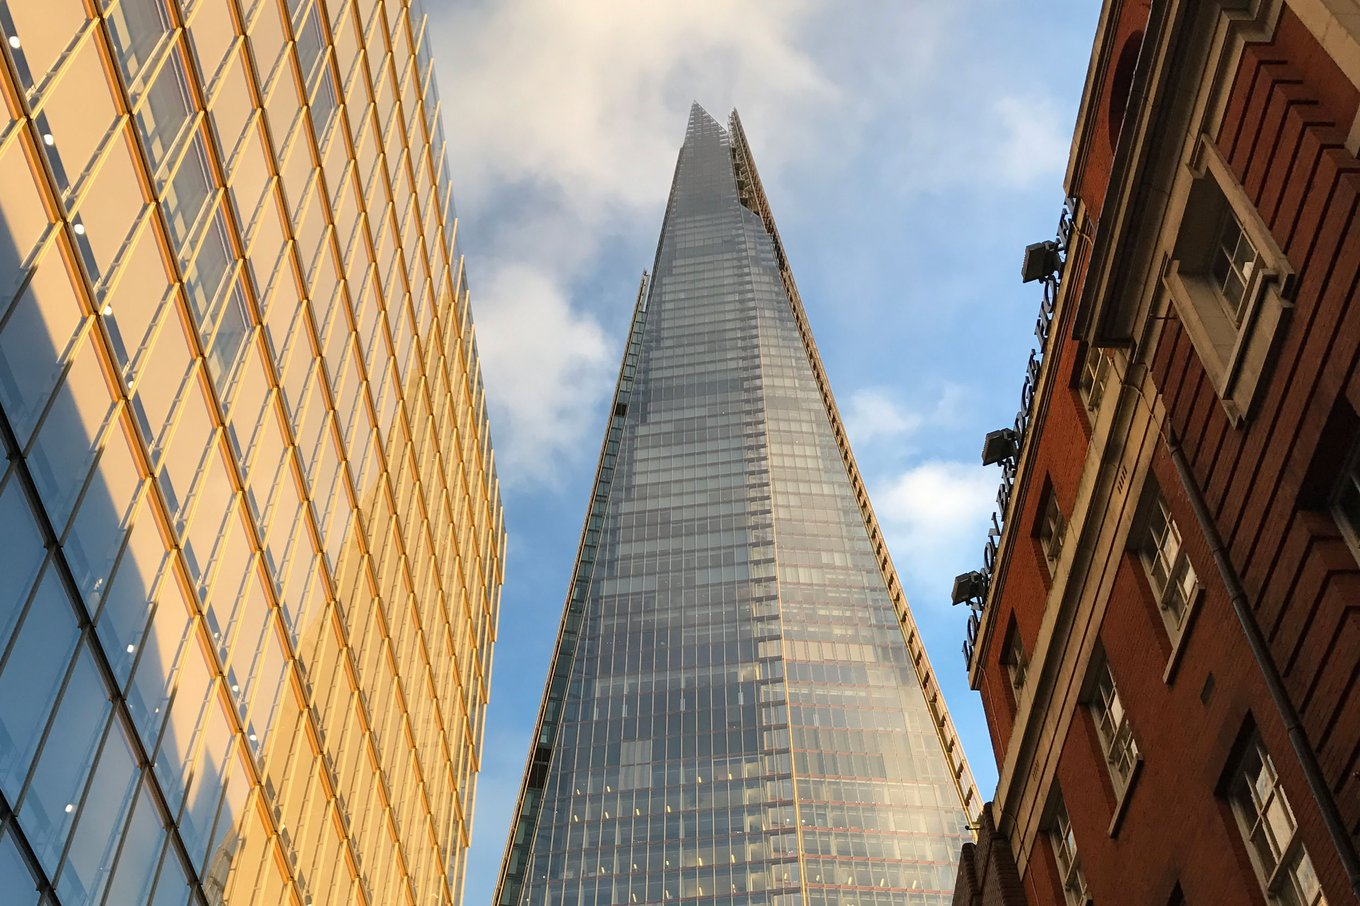 The Shard in London, England